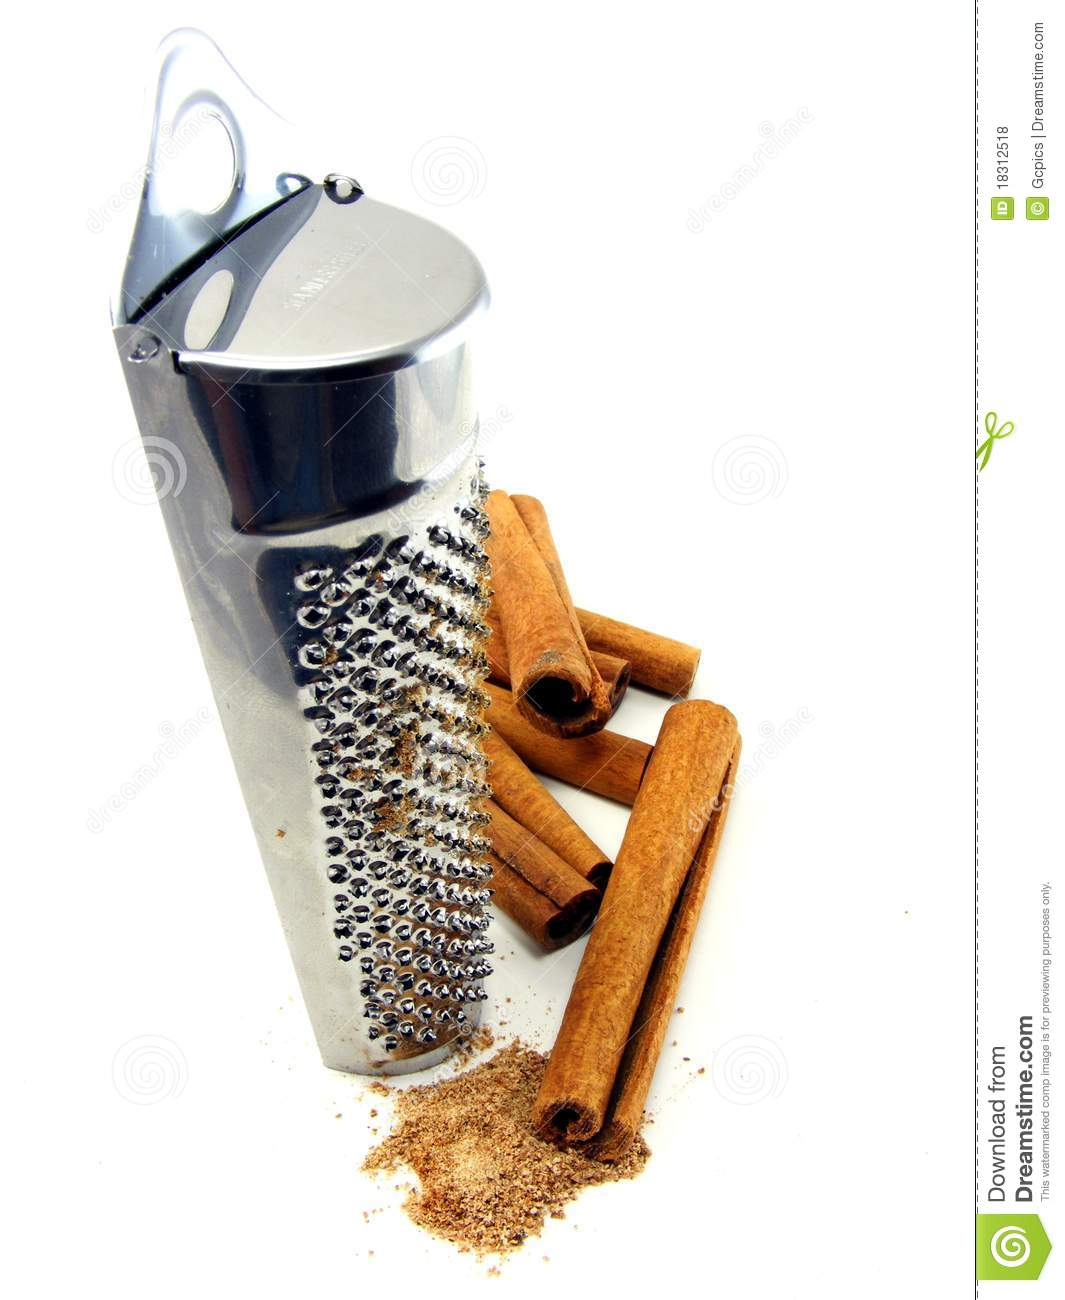 More similar stock images of ` Cinnamon sticks & grater `